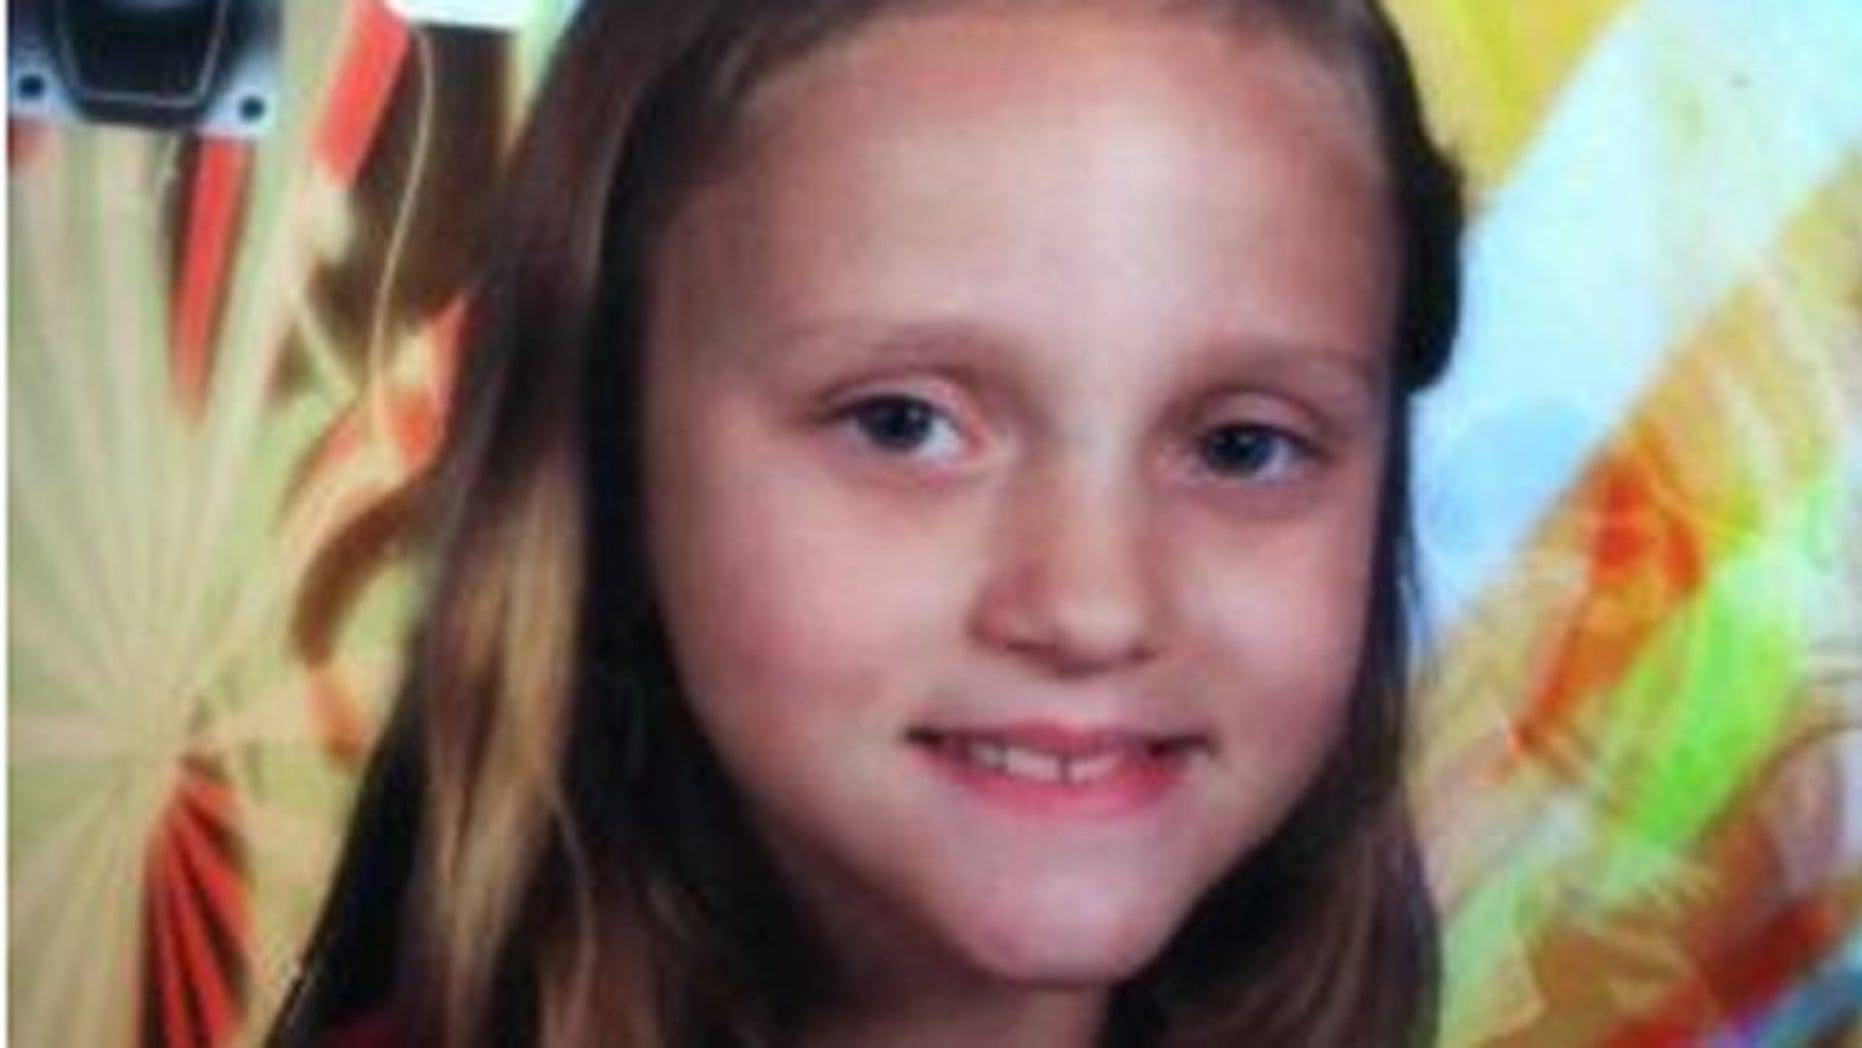 Kami Ring's body was was found in a field near her grandparents' home.